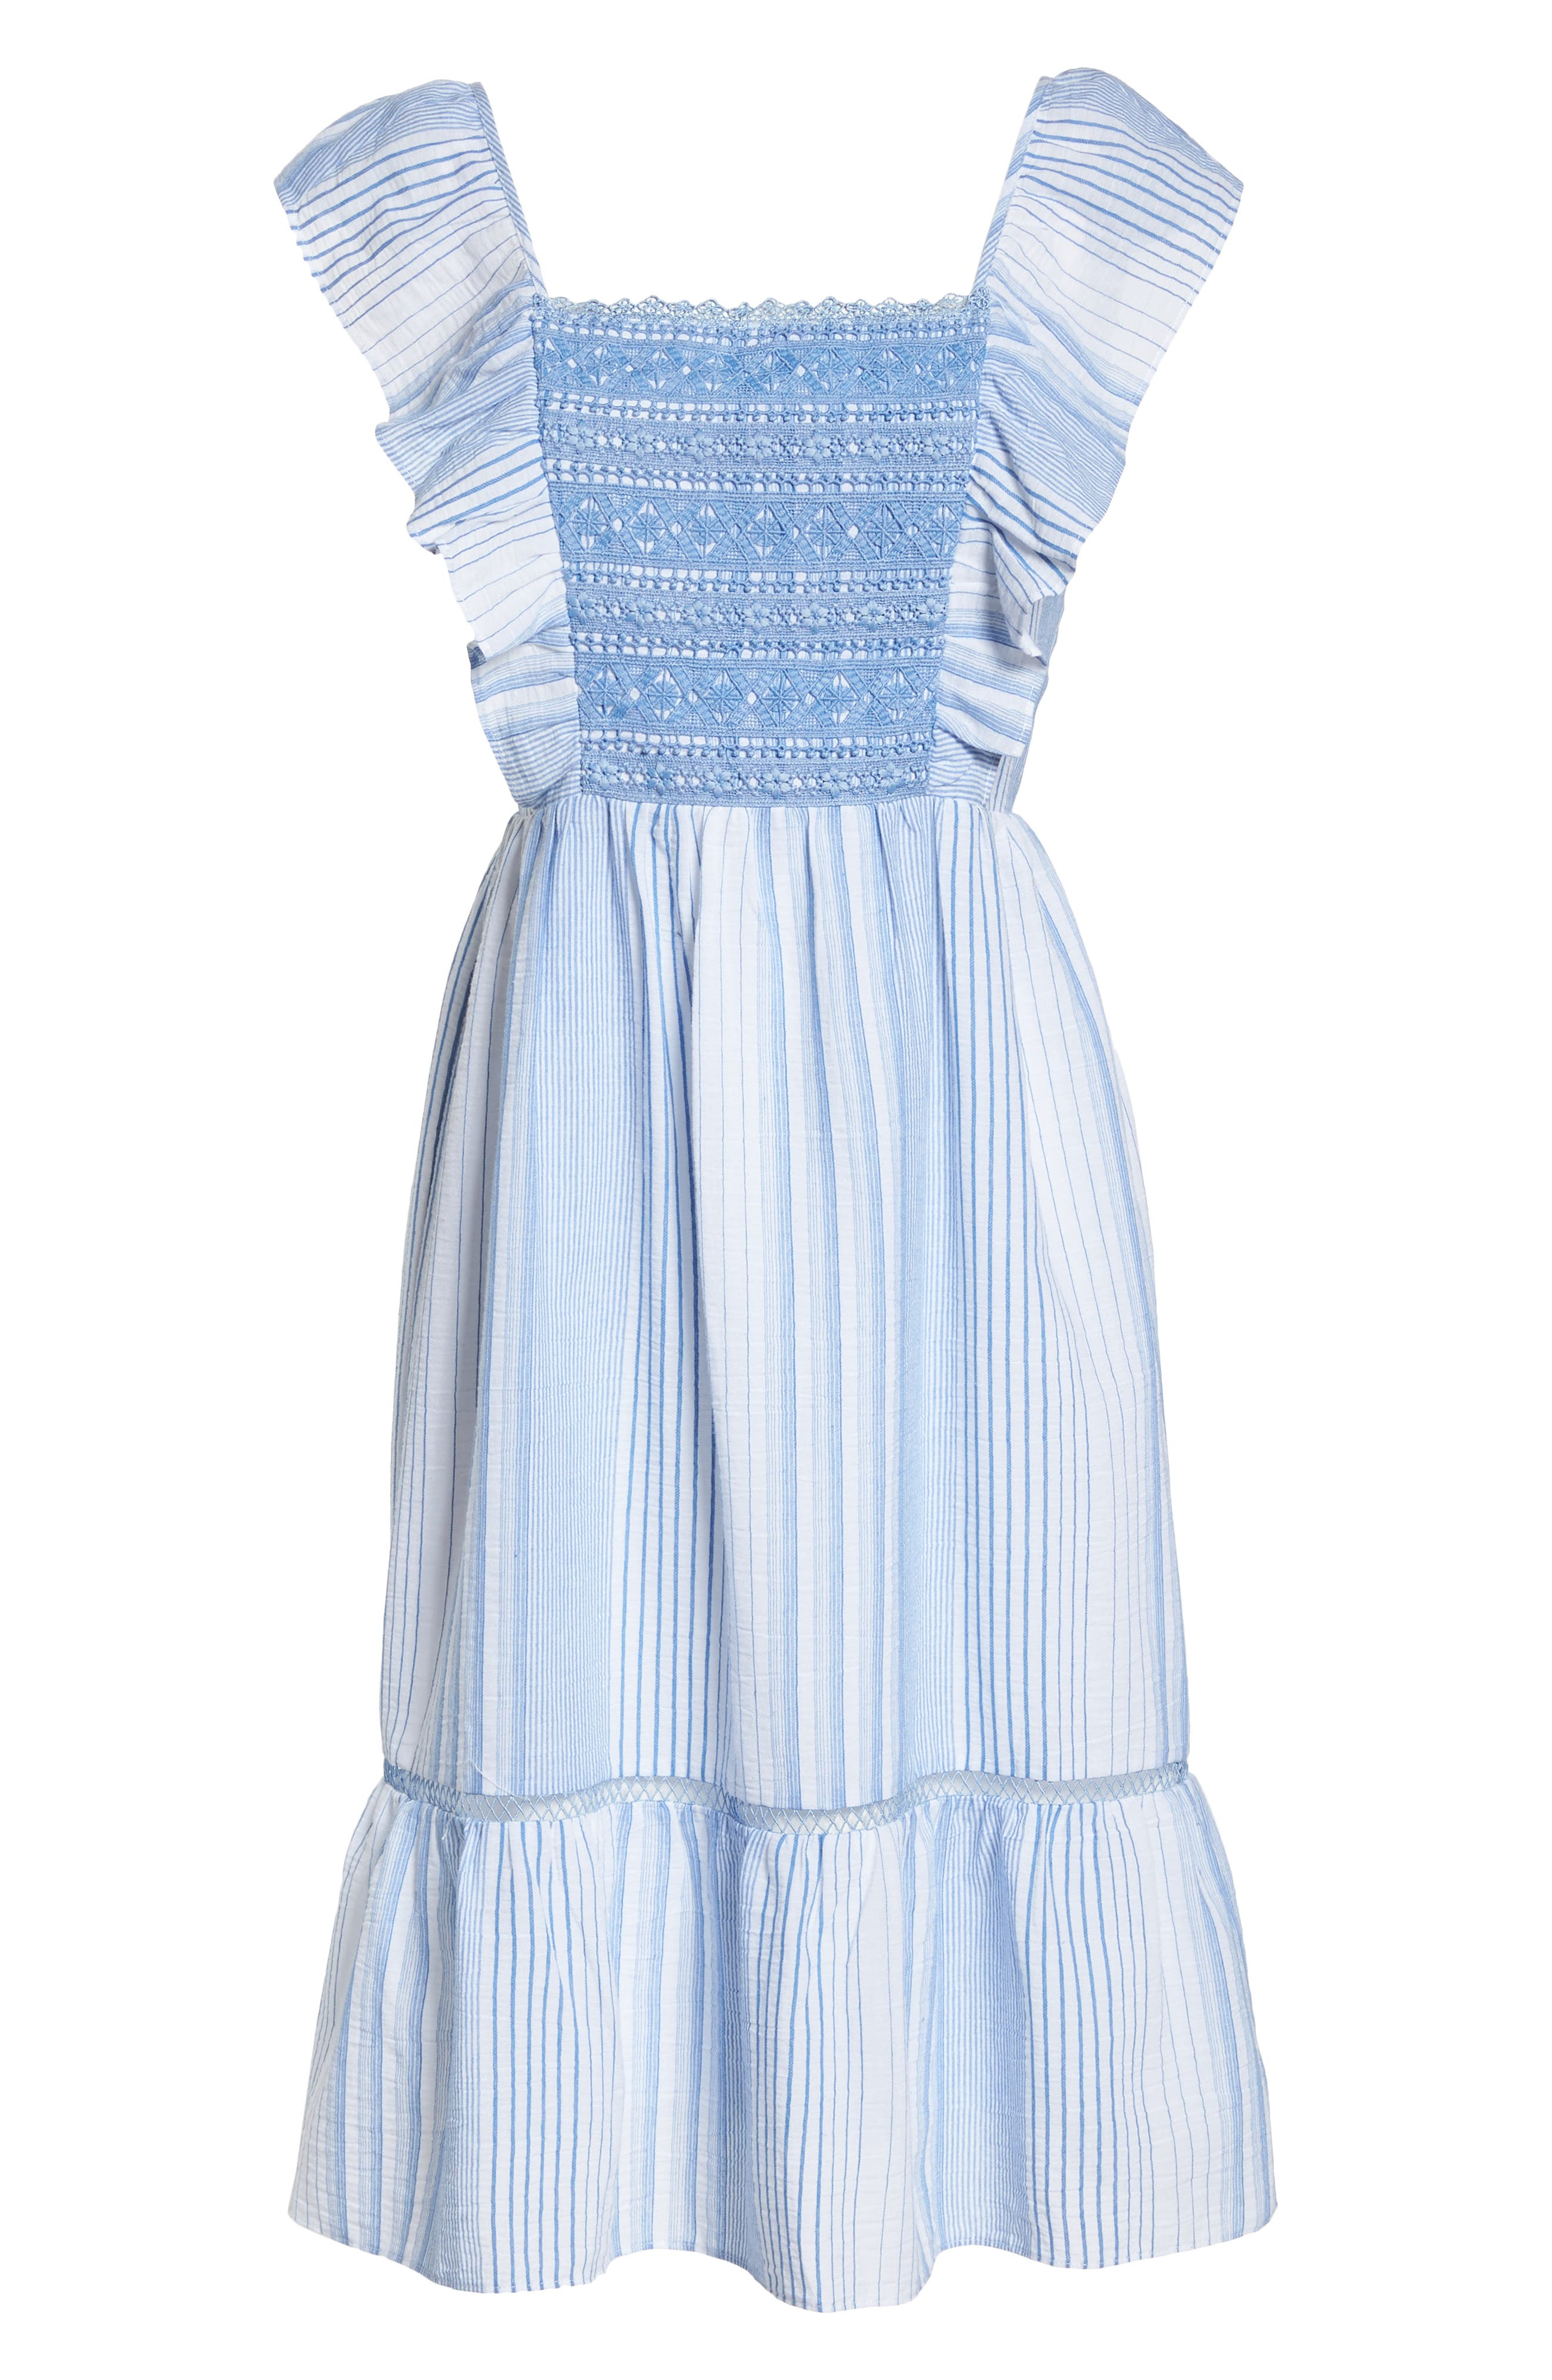 Spencer Stripe Ruffle & Lace Sundress,                             Alternate thumbnail 7, color,                             400